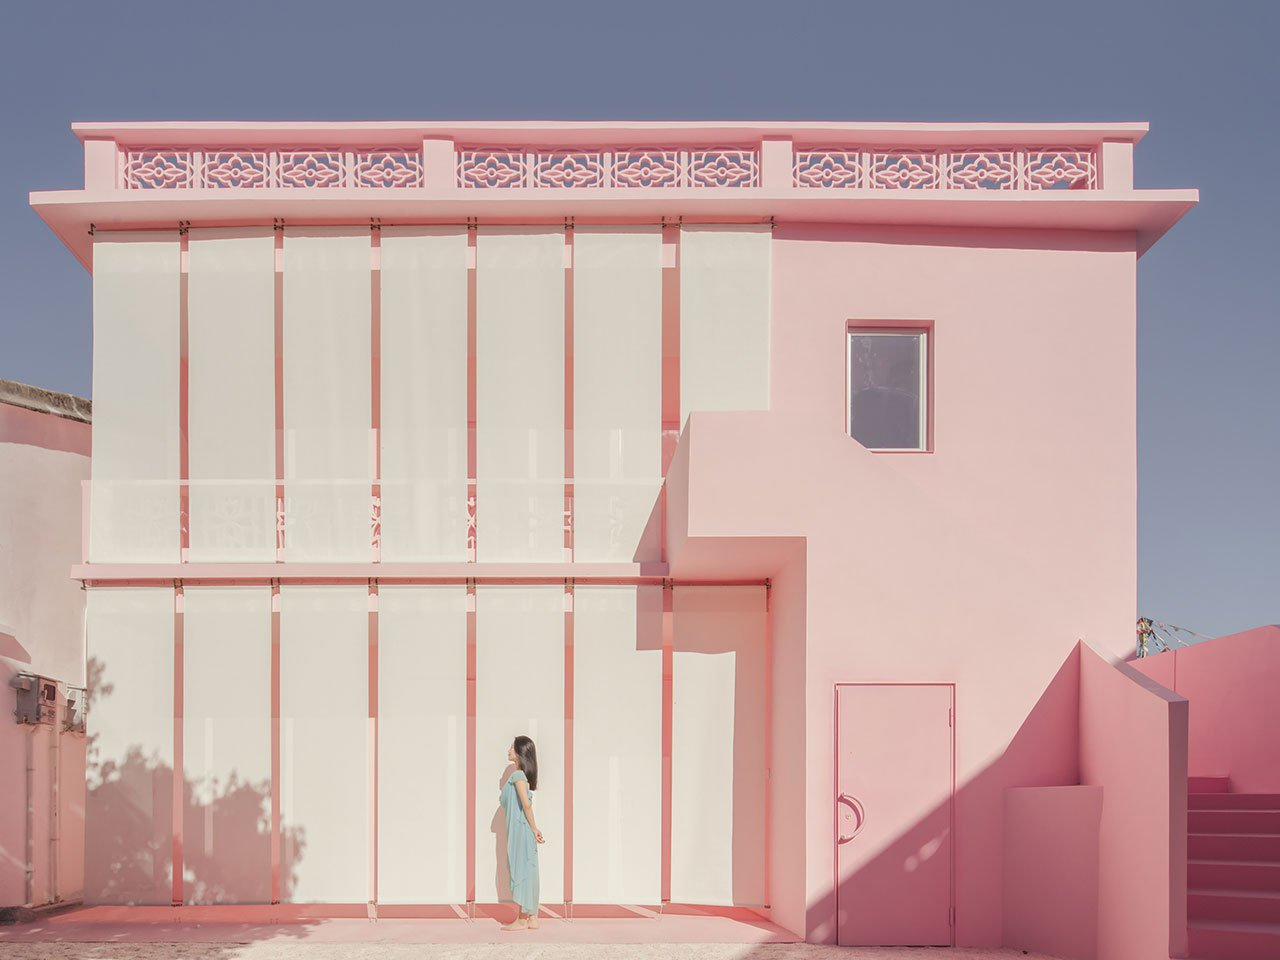 f5_his_house_and_her_house_shenzhen_china_wutopia_lab_yatzer